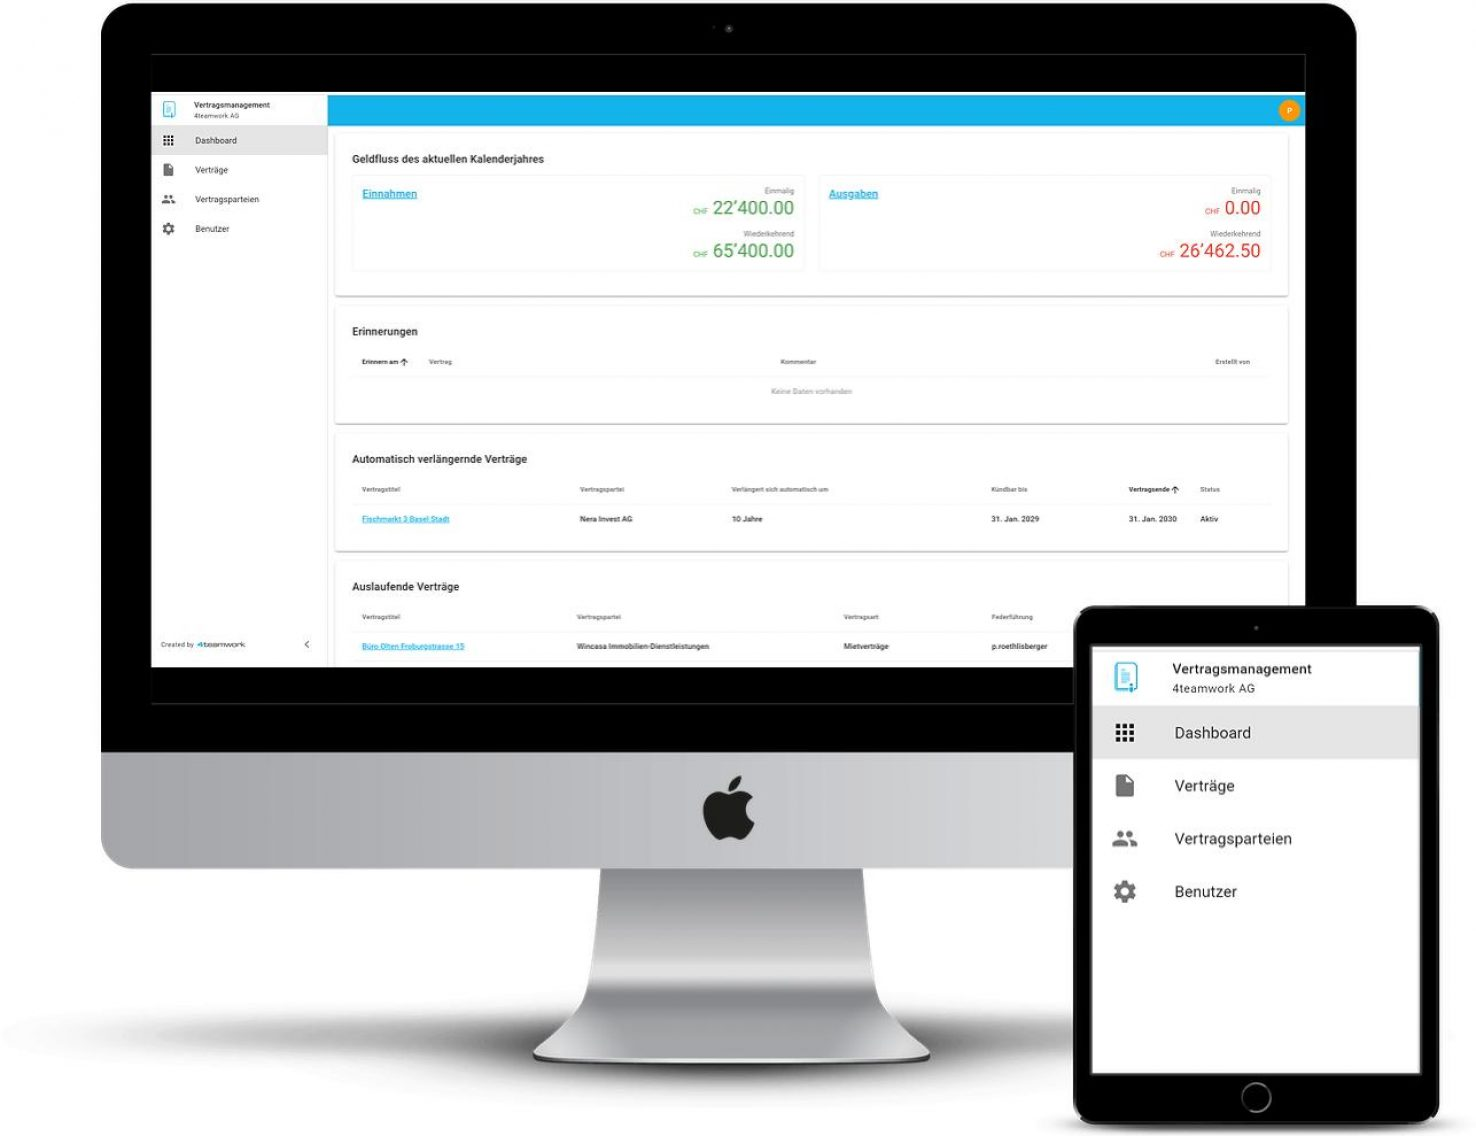 Vertragsmanagement Dashboard